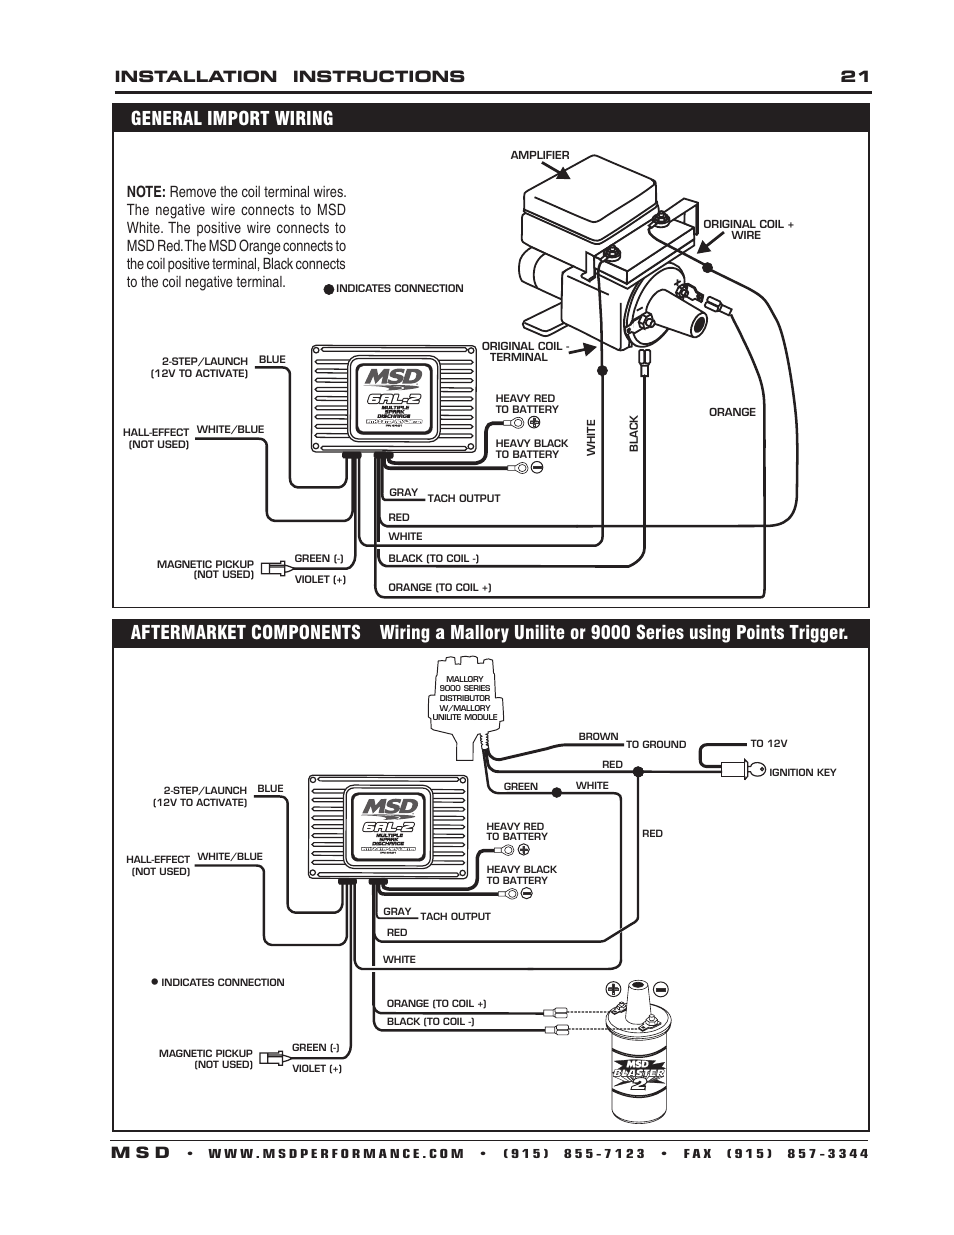 medium resolution of installation instructions 21 m s d msd 6421 6al 2 ignition control installation user manual